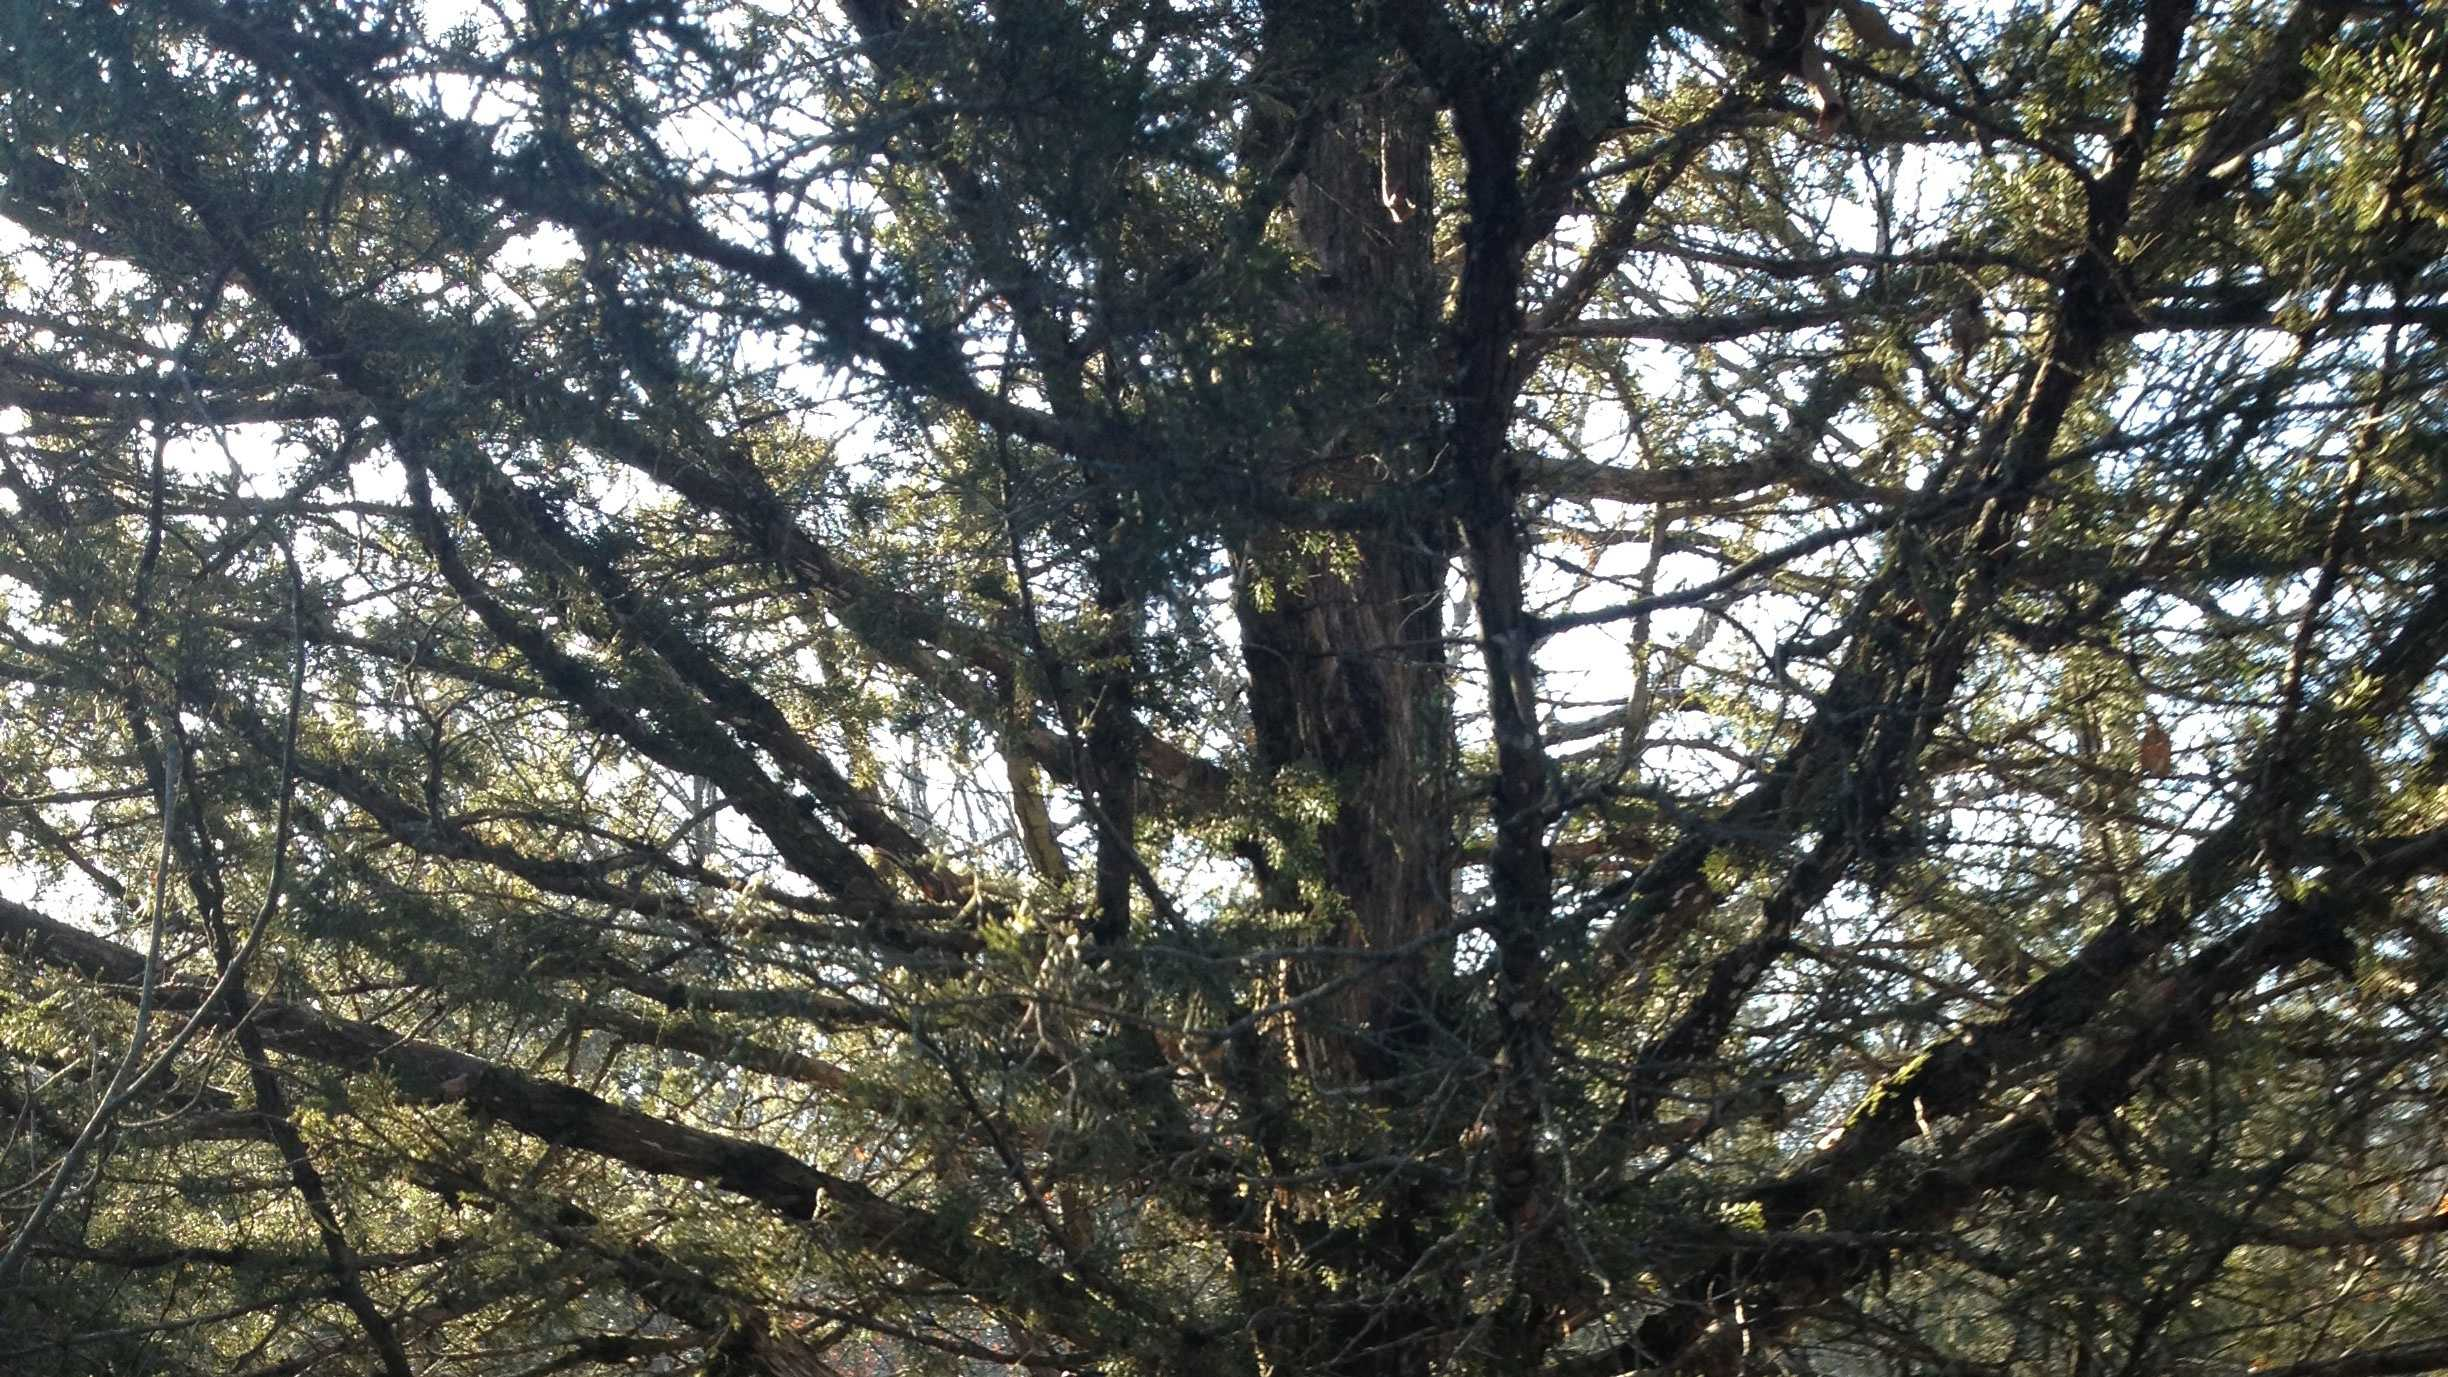 money from bank robbery found hidden in tree